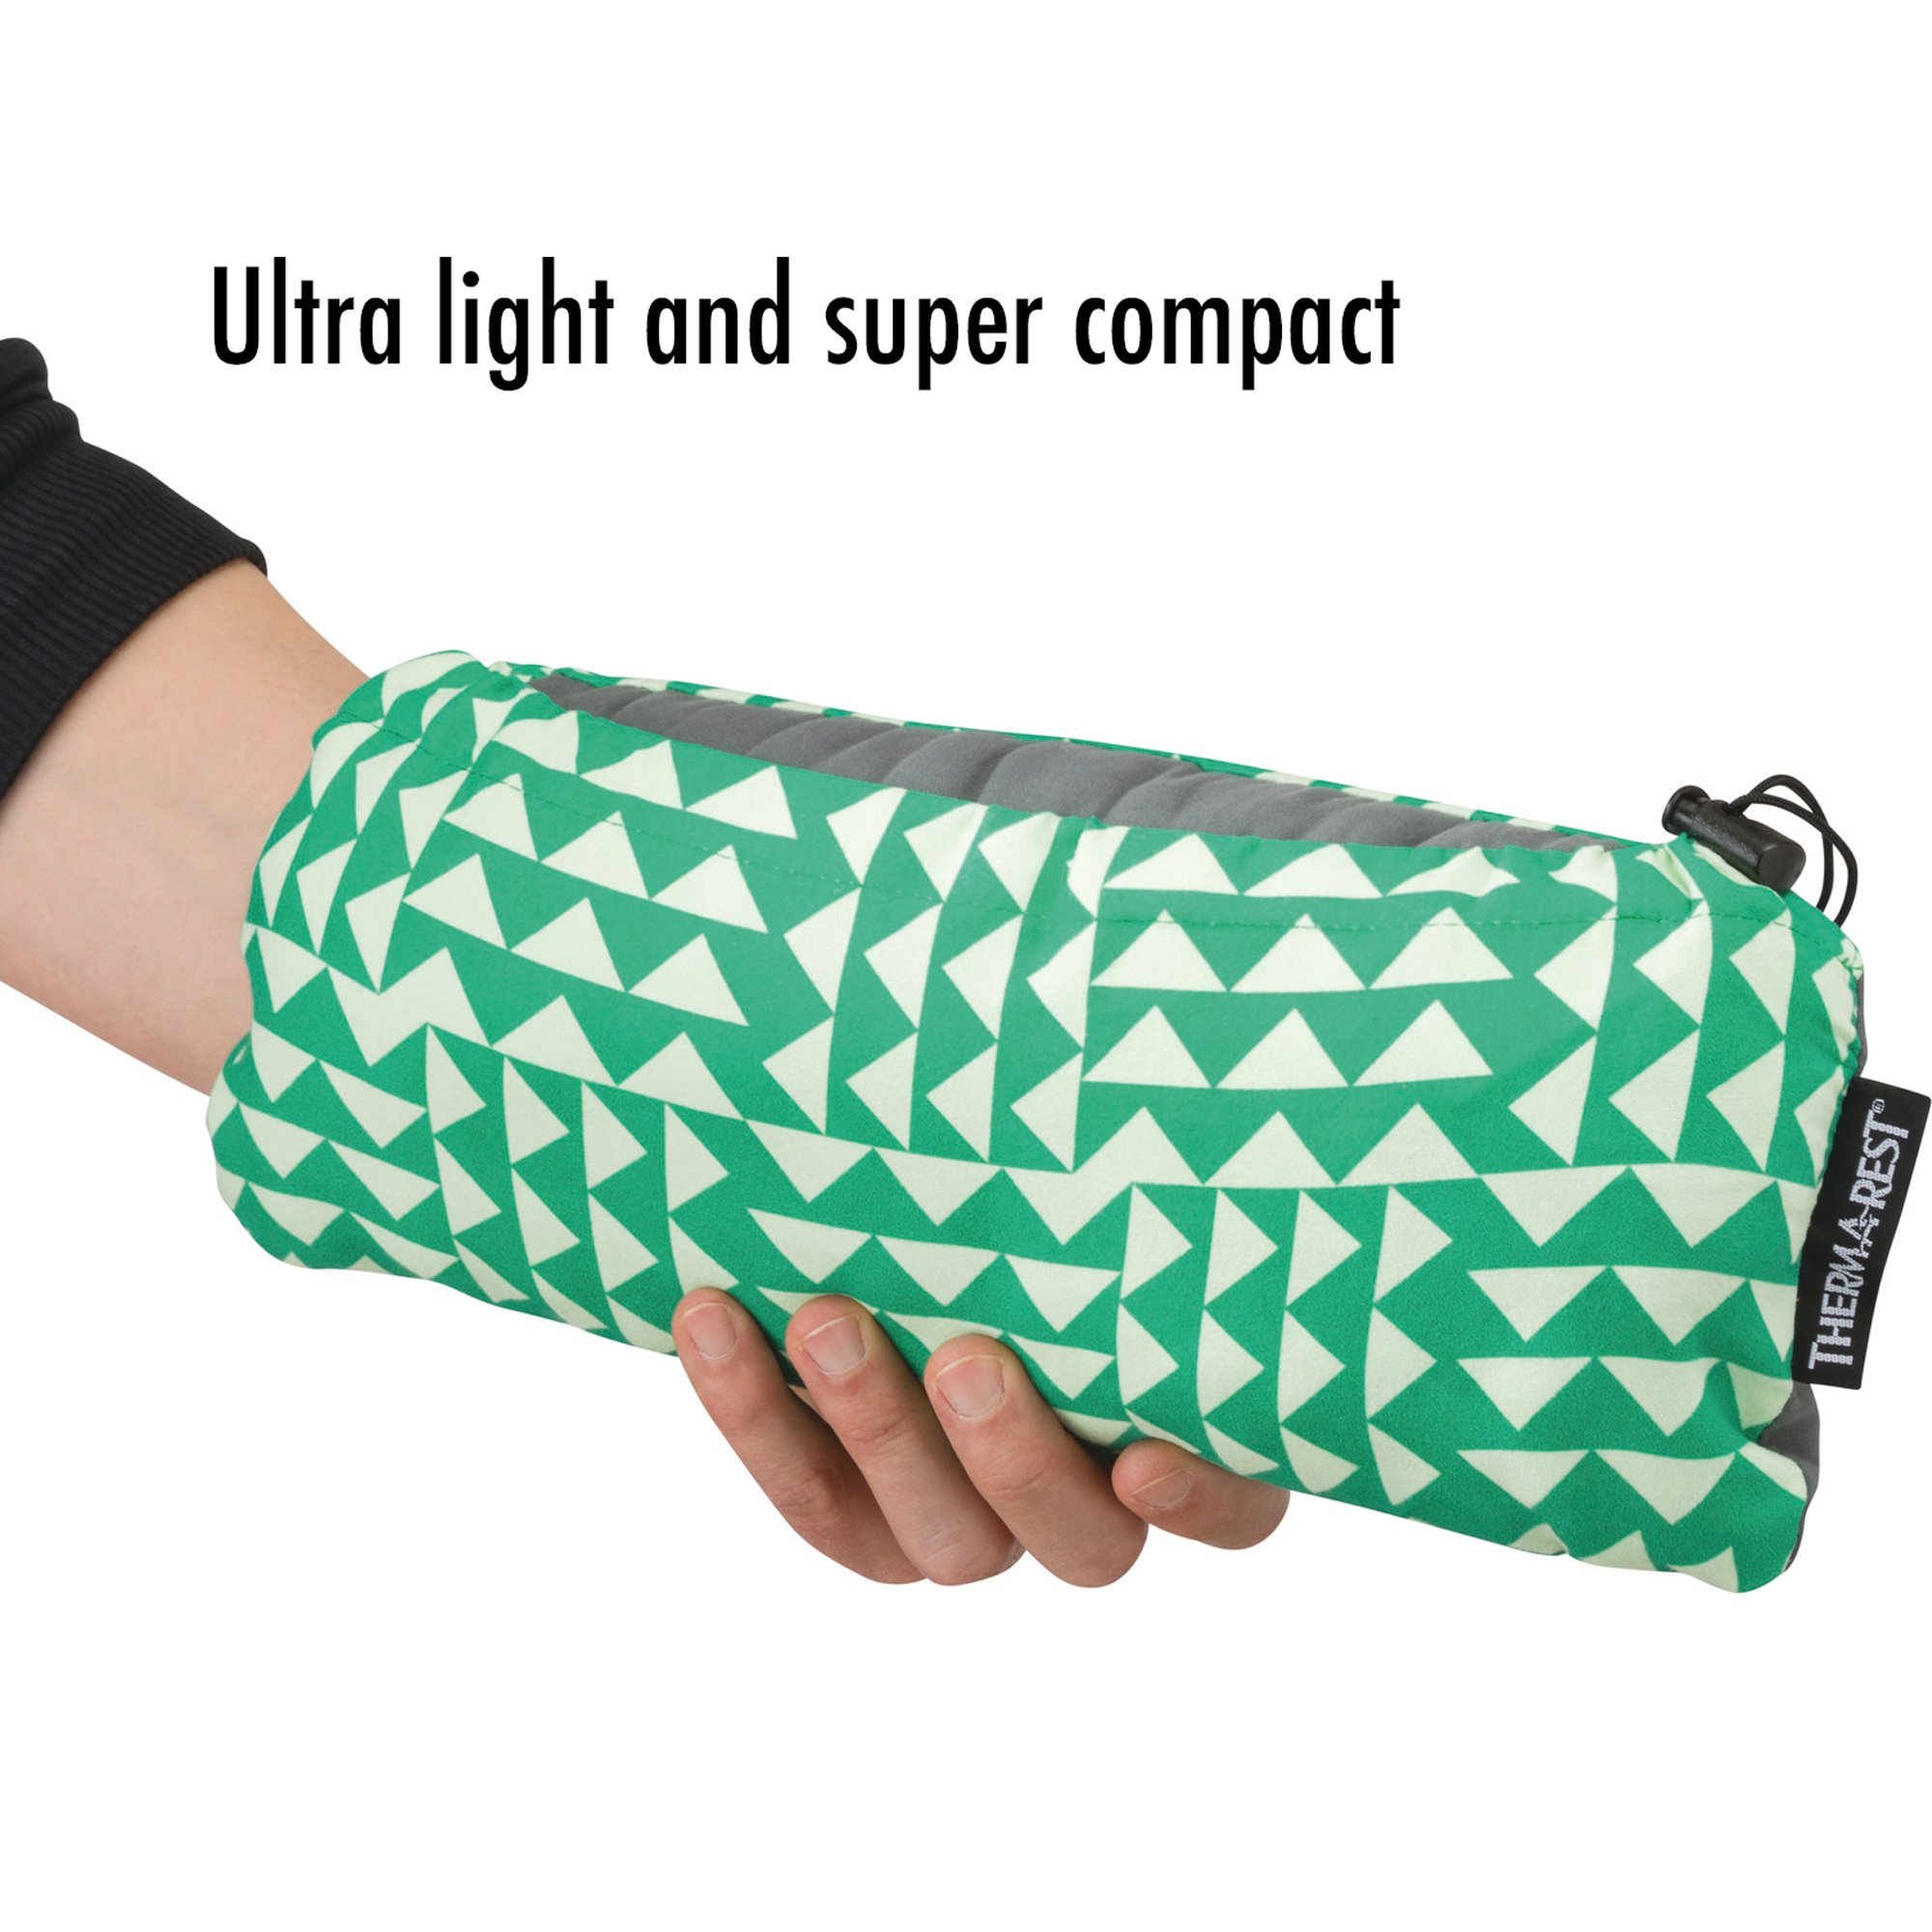 portable pillow camping childrens dhgate therm outdoor mini from comen thermarest compressible hike equipment product rest sleeping hot wholesale hiking ultralight travel multifuntion bags a with bag